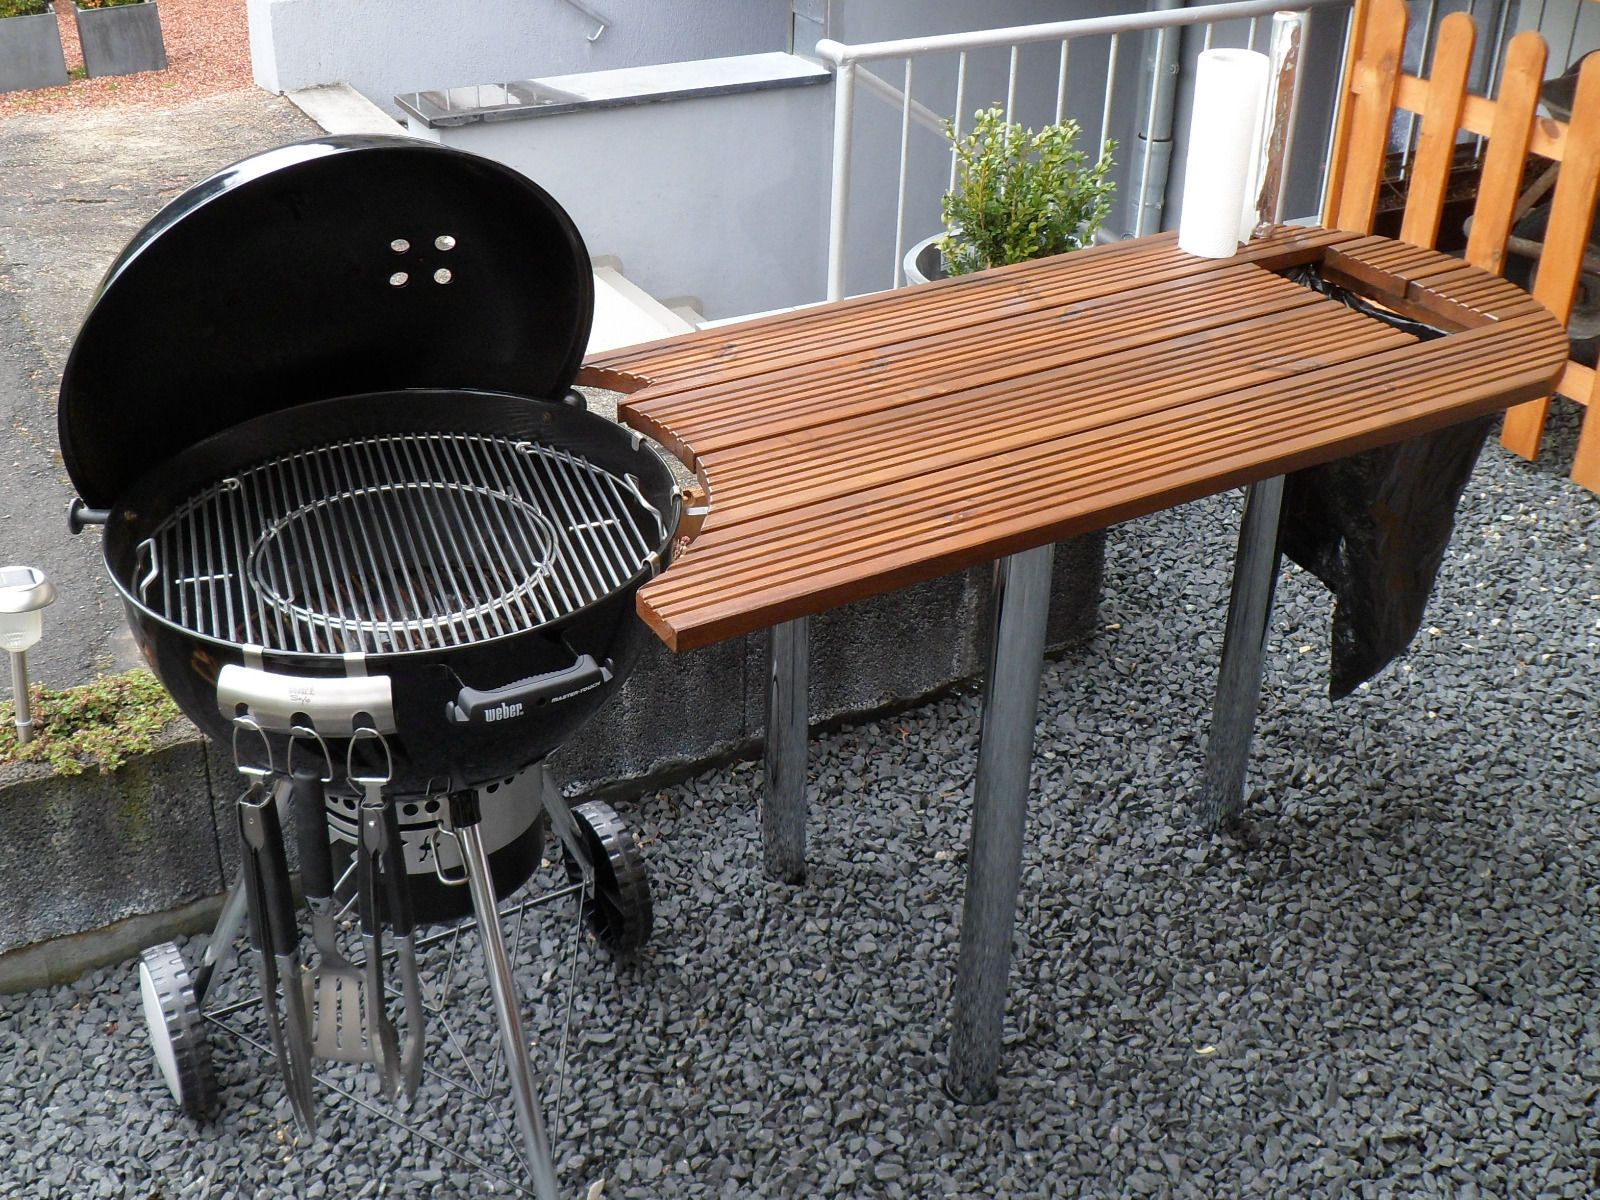 tisch f r weber grill one touch 57cm beesondere grills pinterest garten tisch und garten. Black Bedroom Furniture Sets. Home Design Ideas